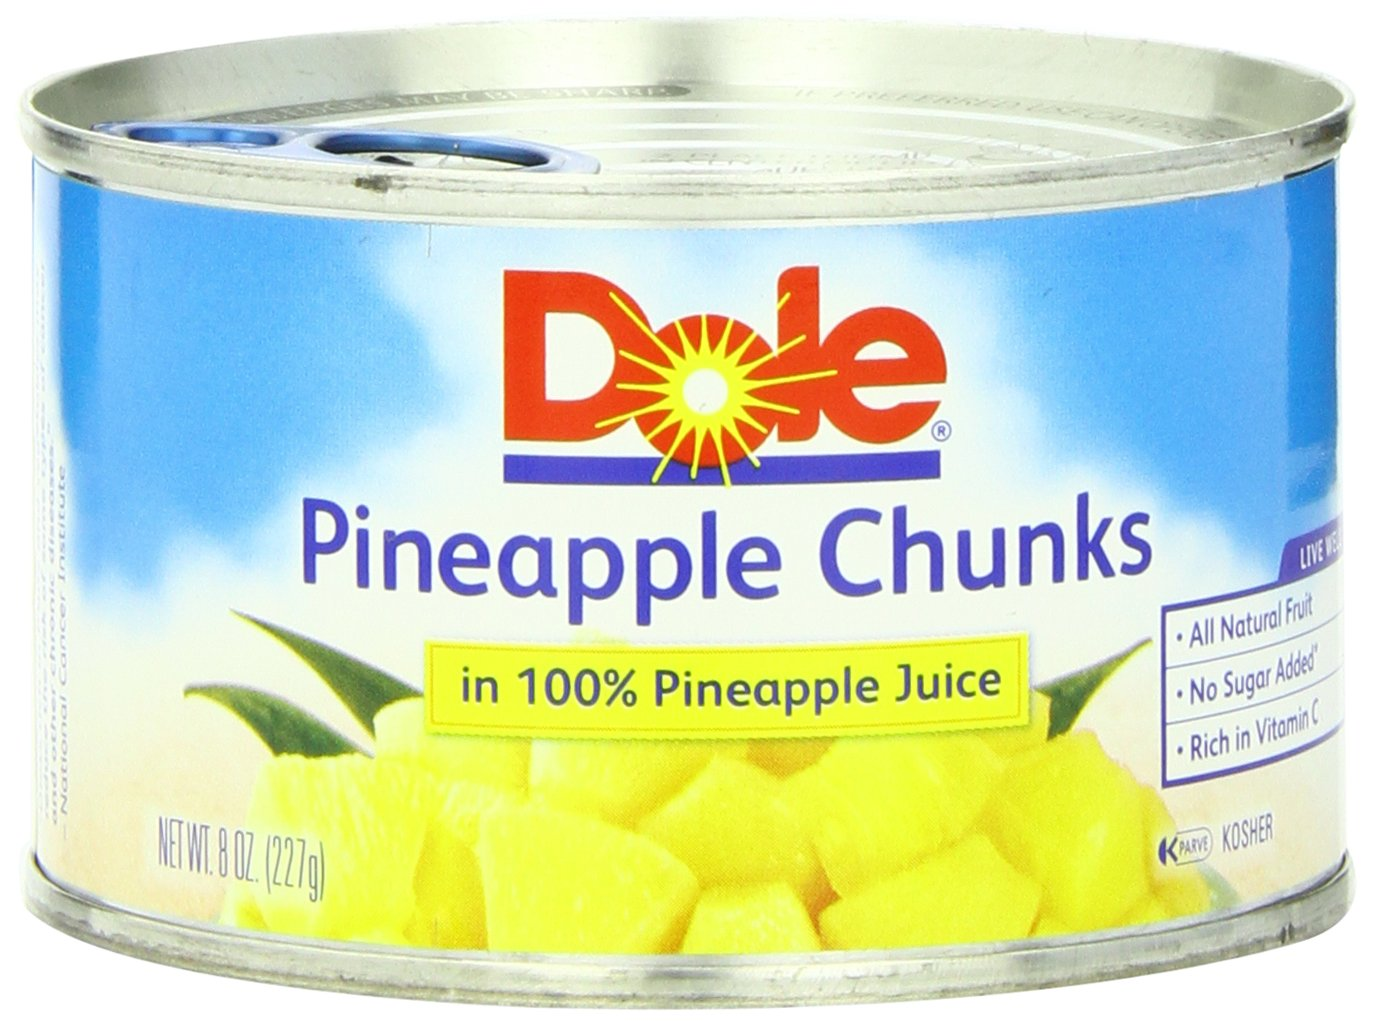 Dole Pineapple Chunks in Juice, 8-Ounce Cans (Pack of 24) by Dole